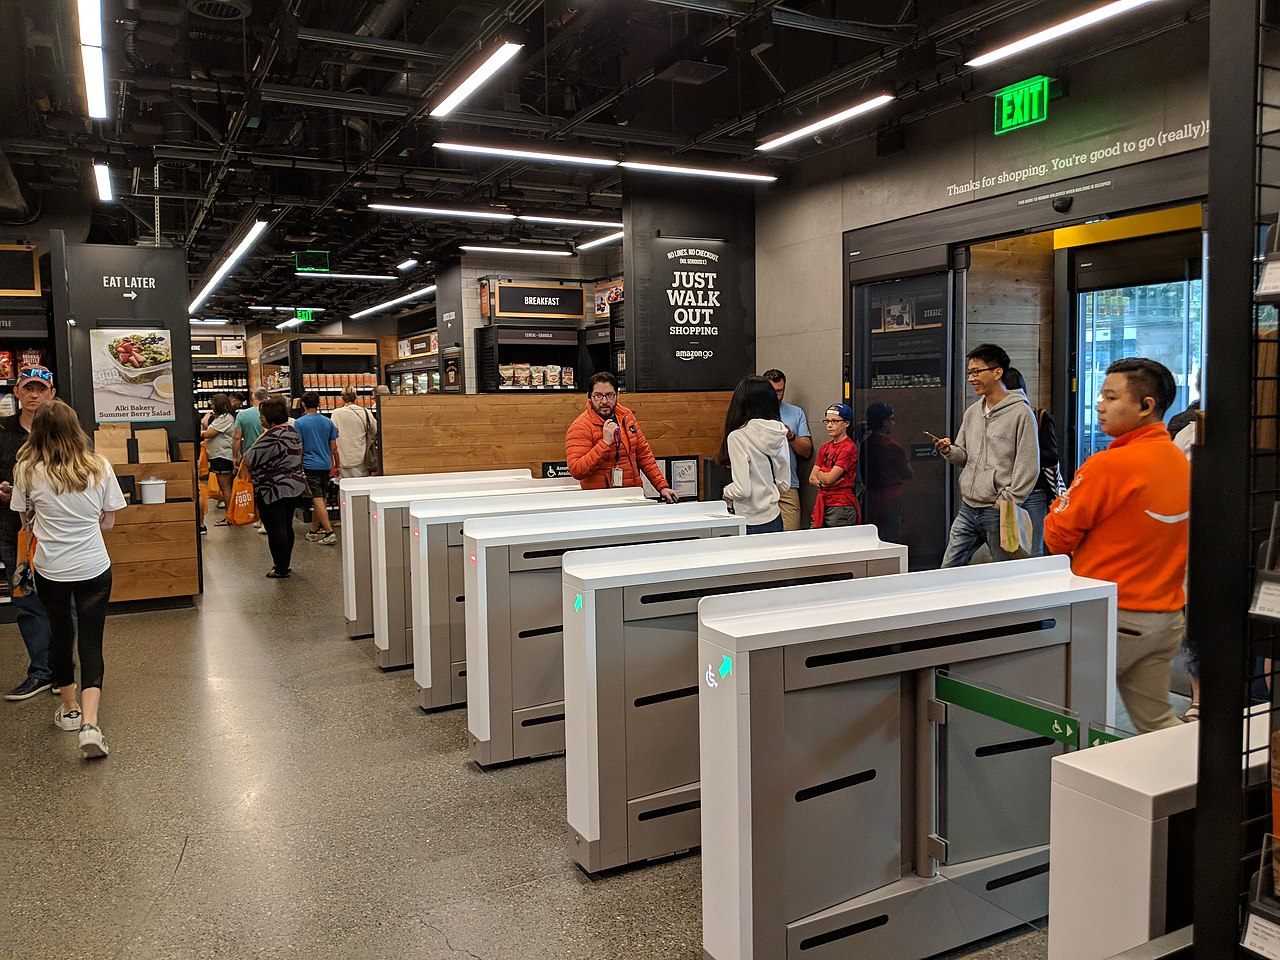 Amazon eyes up to 3,000 cashierless stores by 2021